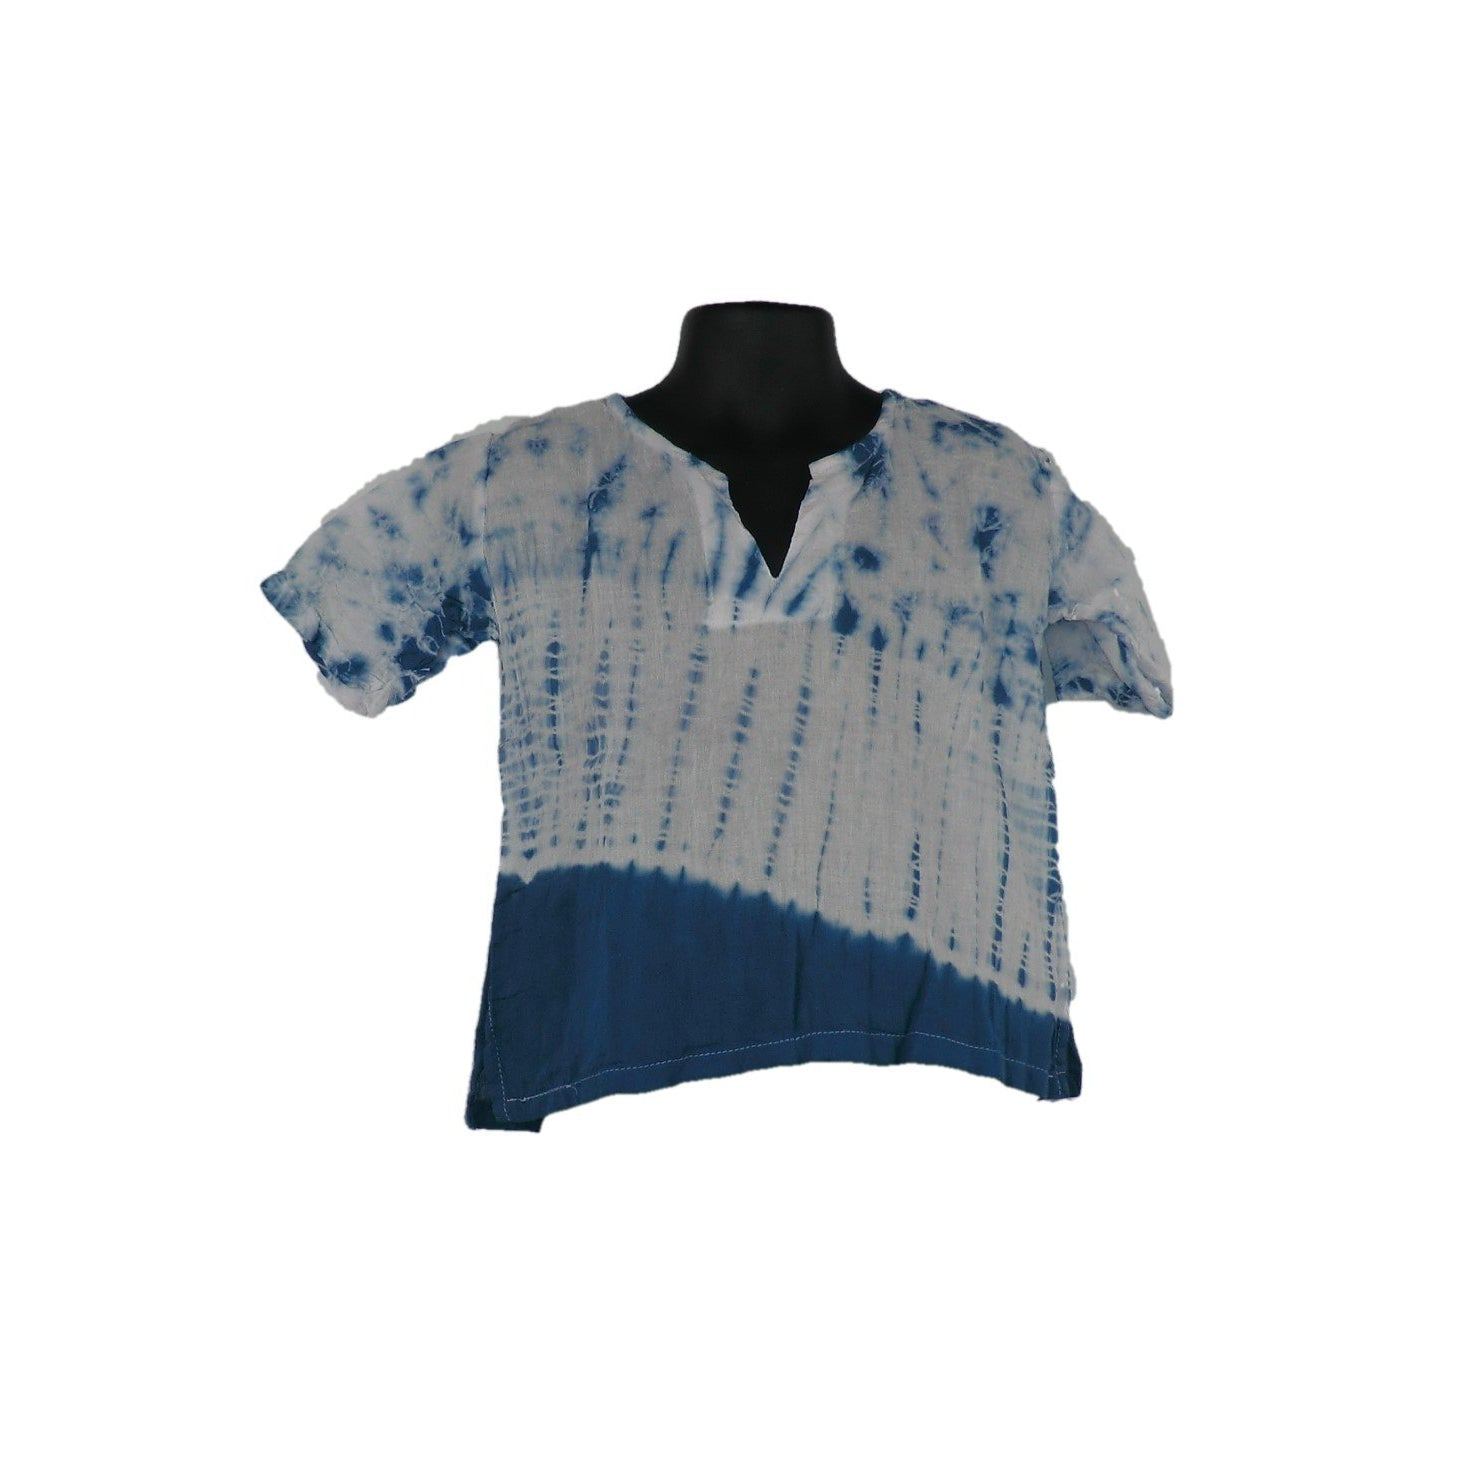 Blue Cotton Tops 2 - 3yrs - Matico